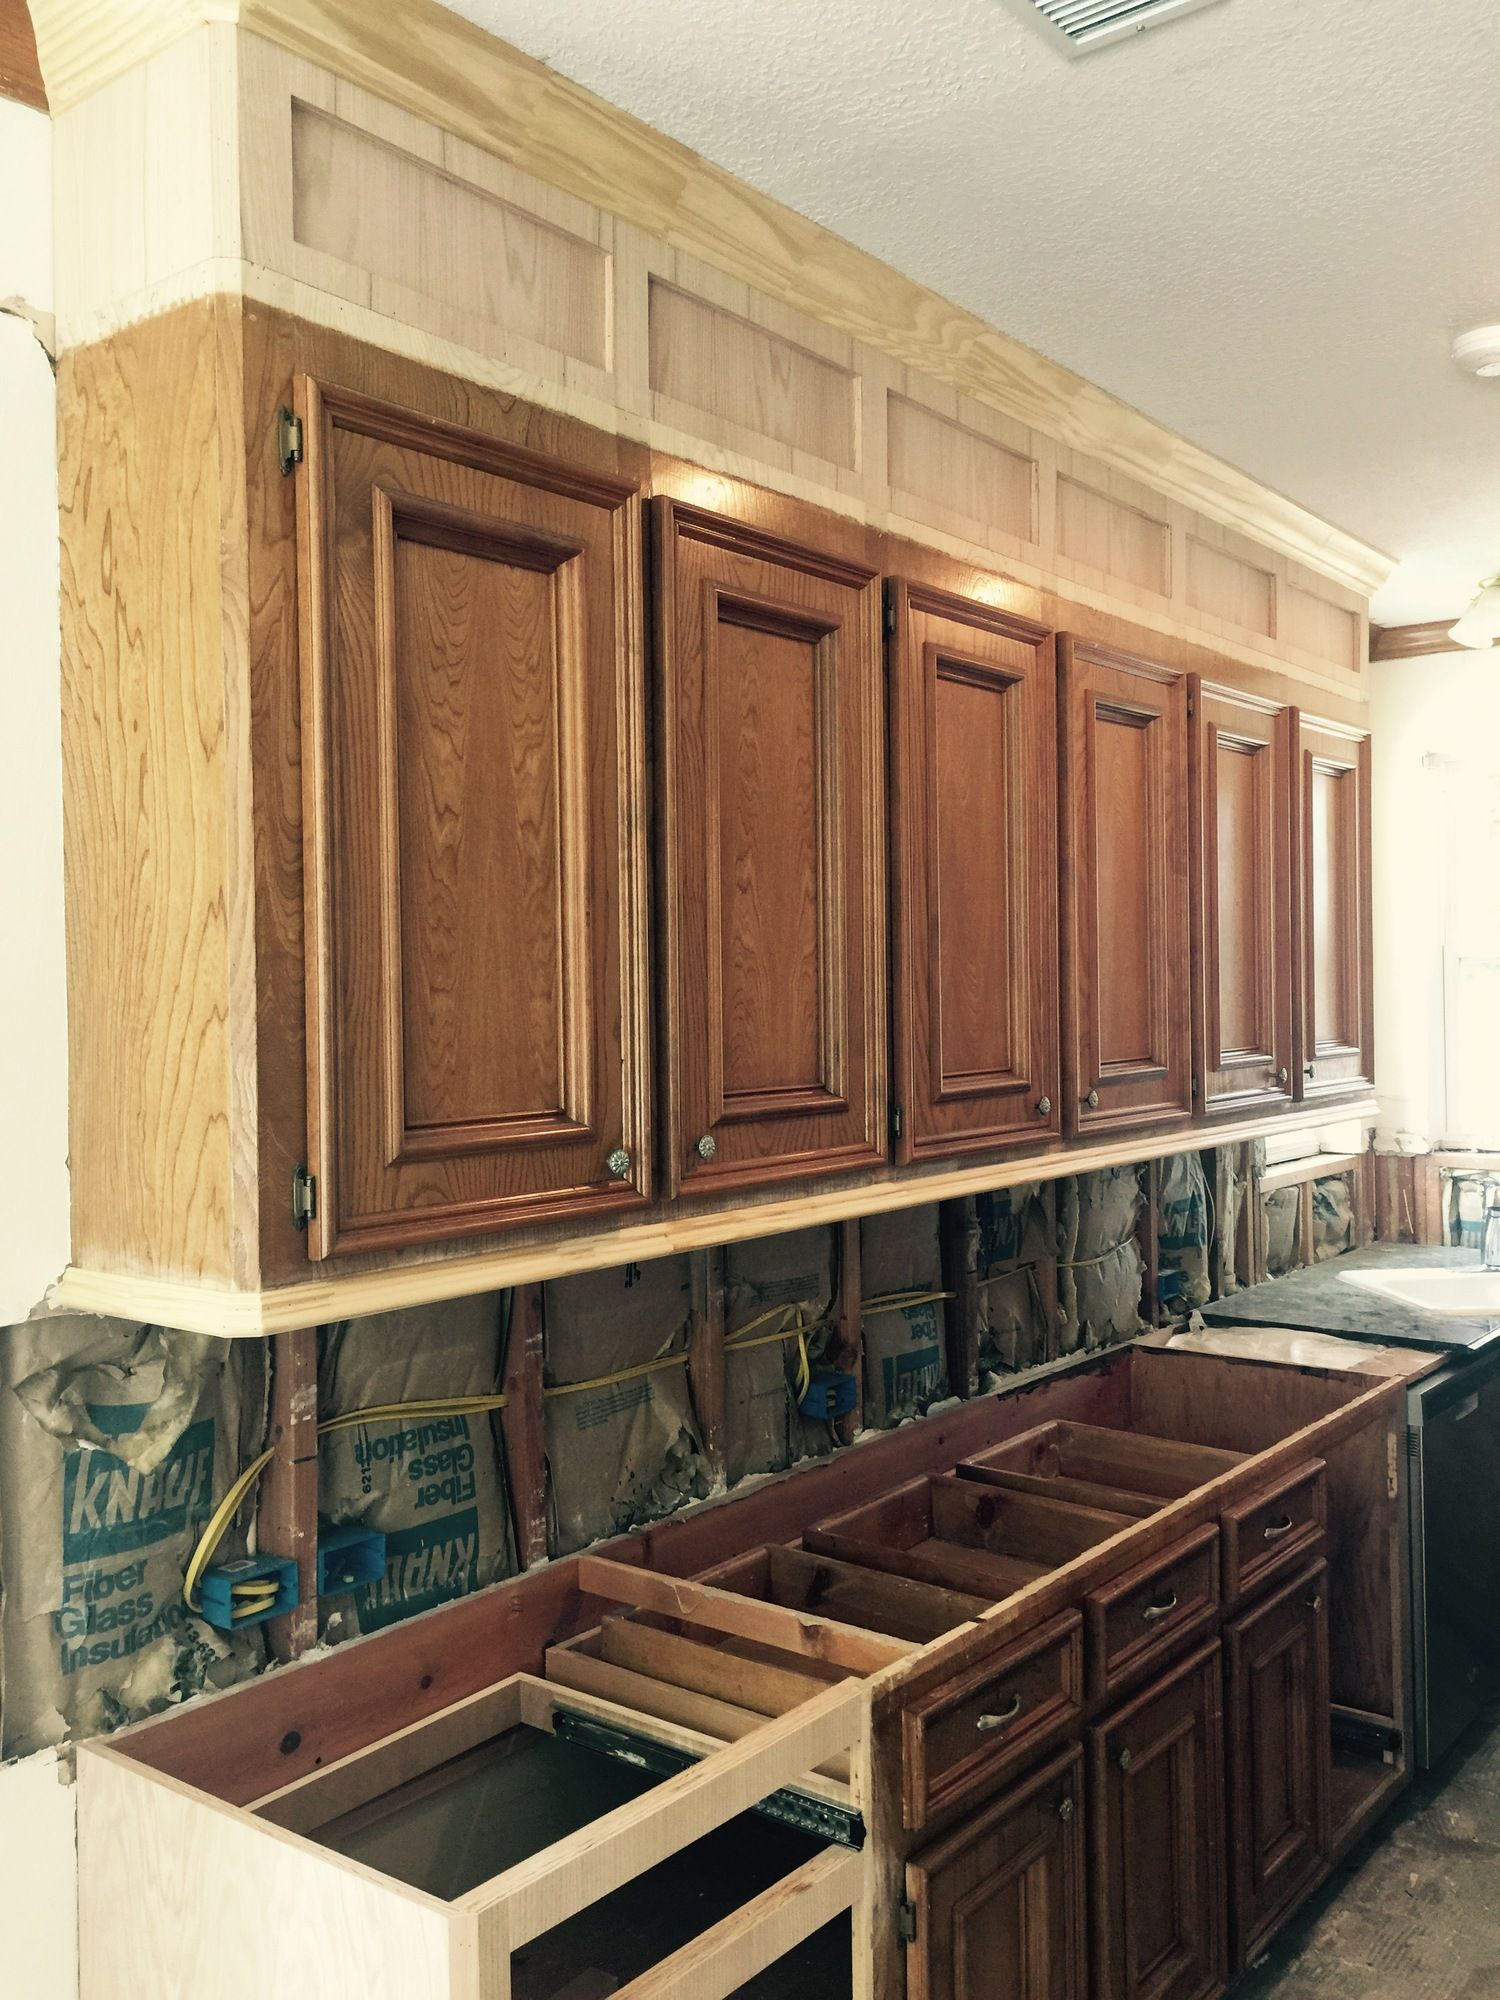 How to make ugly cabinets look great house ideas pinterest